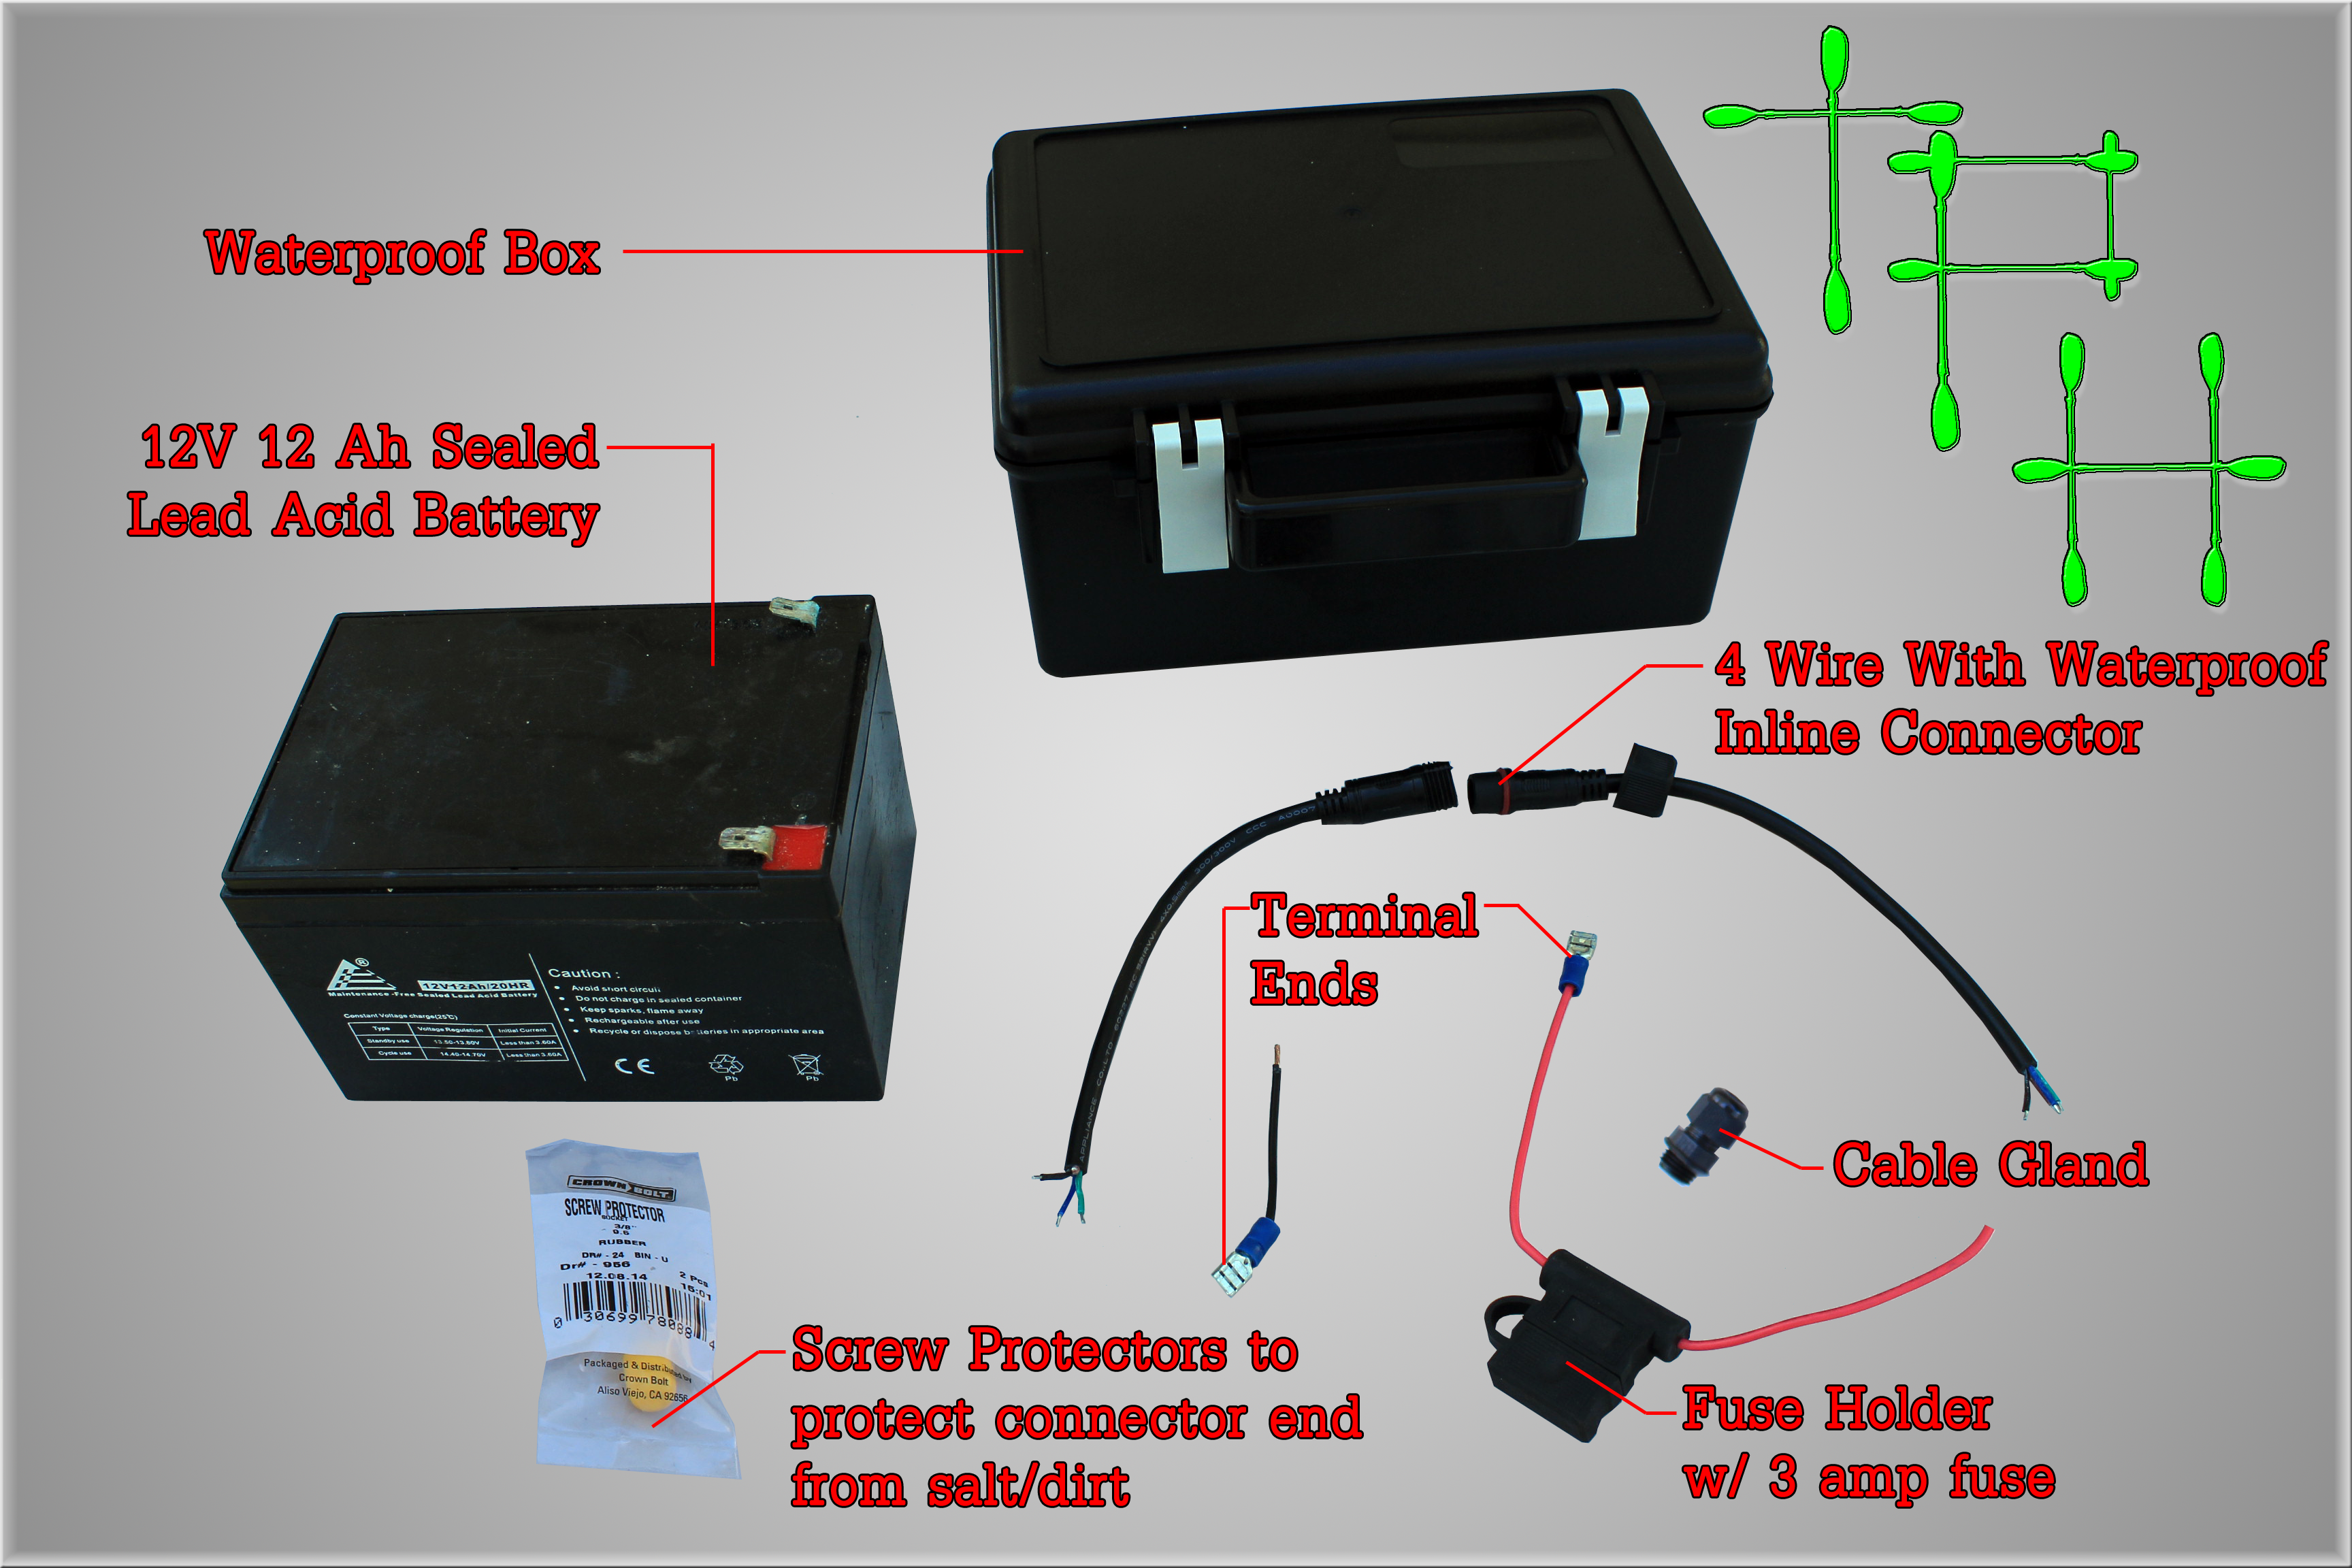 Watertight Fuse Box Not Lossing Wiring Diagram How To Diy Waterproof Battery The Plastic Hull Small Boxes Large